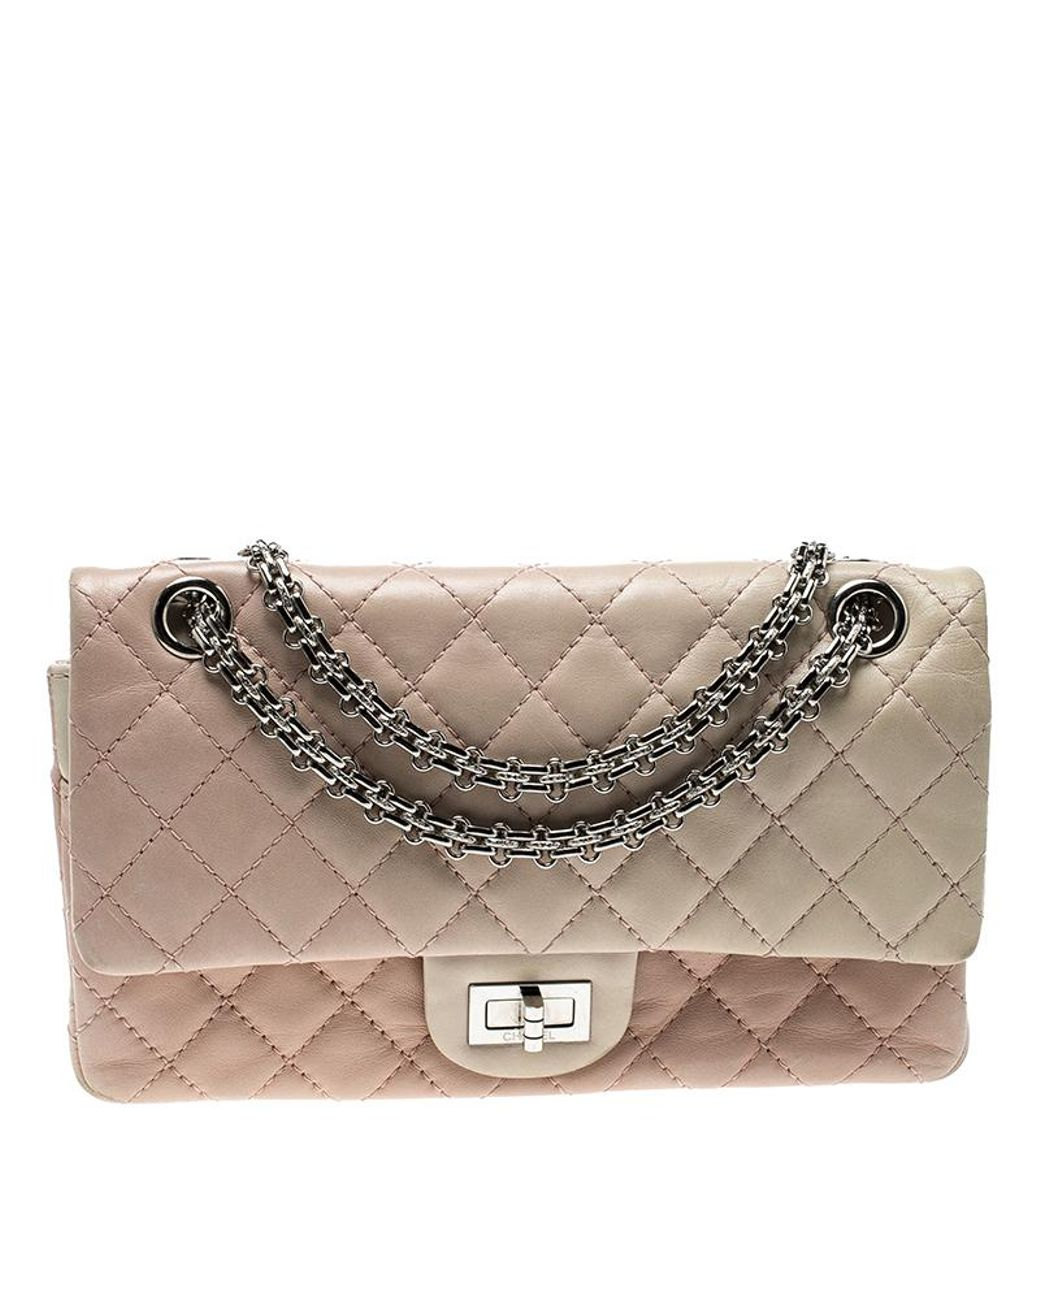 f8d908b7e7c8ac Chanel Multicolor Quilted Leather Reissue 2.55 Classic 225 Flap Bag - Lyst